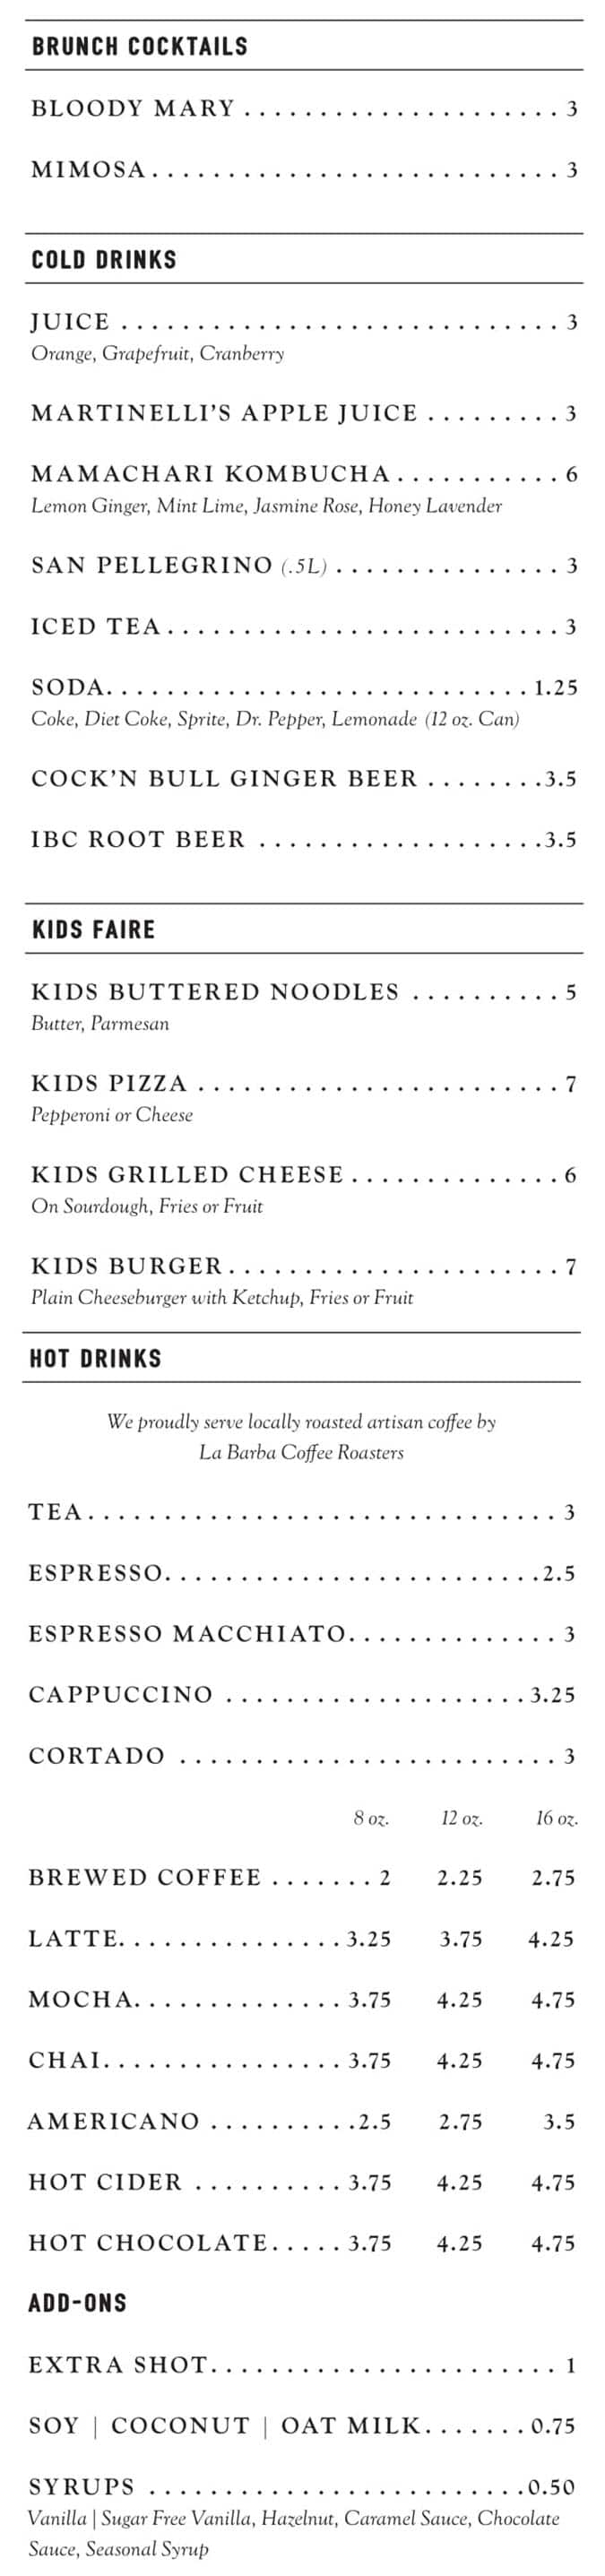 Stratford Proper brunch menu - brunch cocktails, hot drinks, cold drinks, kids